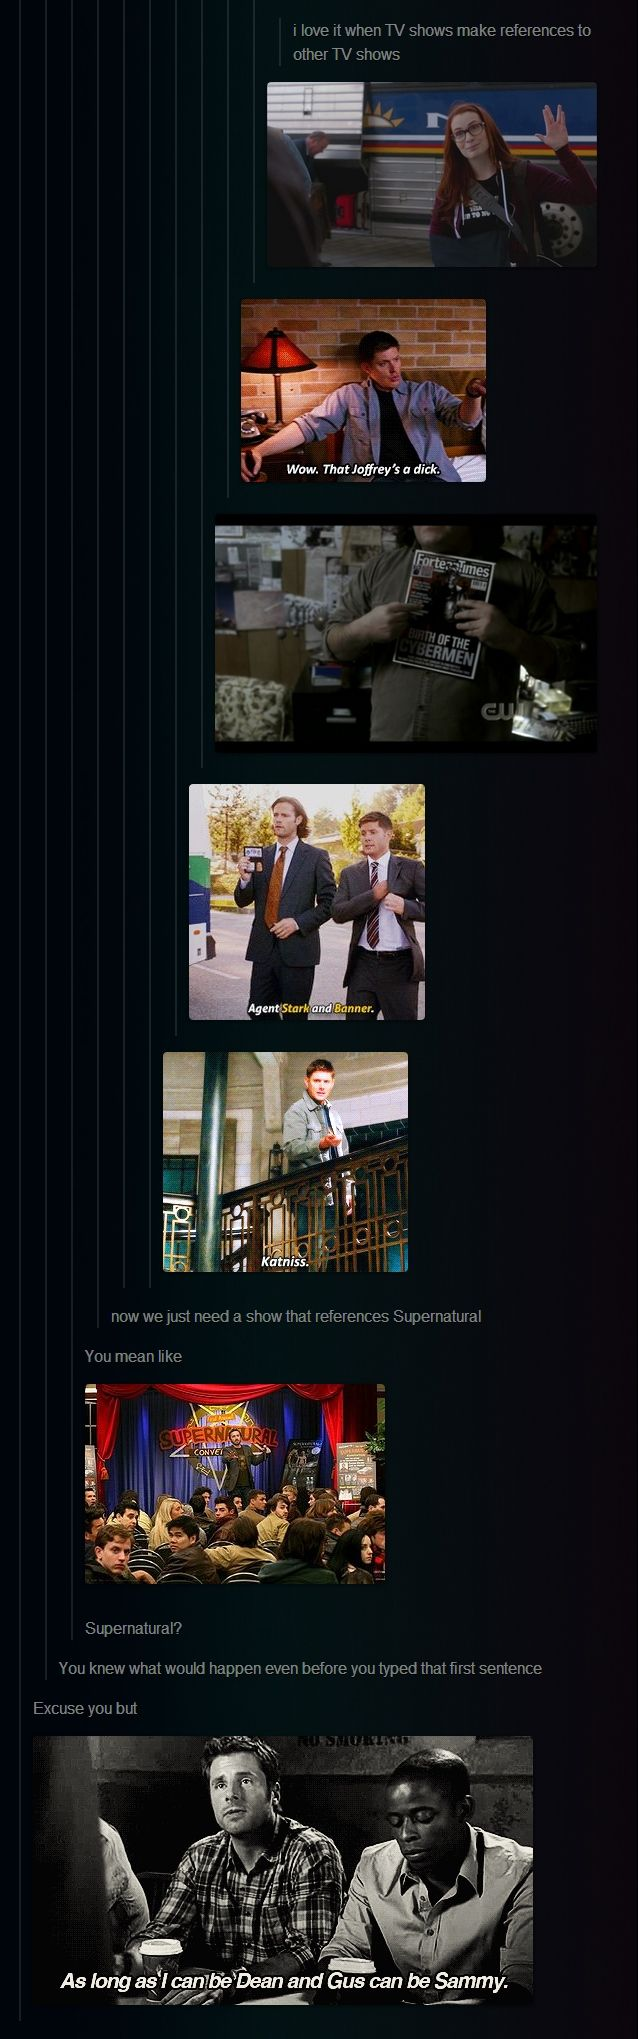 Hahahahaha!!! Supernatural has all the references even about themselves, but that's funny that another show made a reference to them